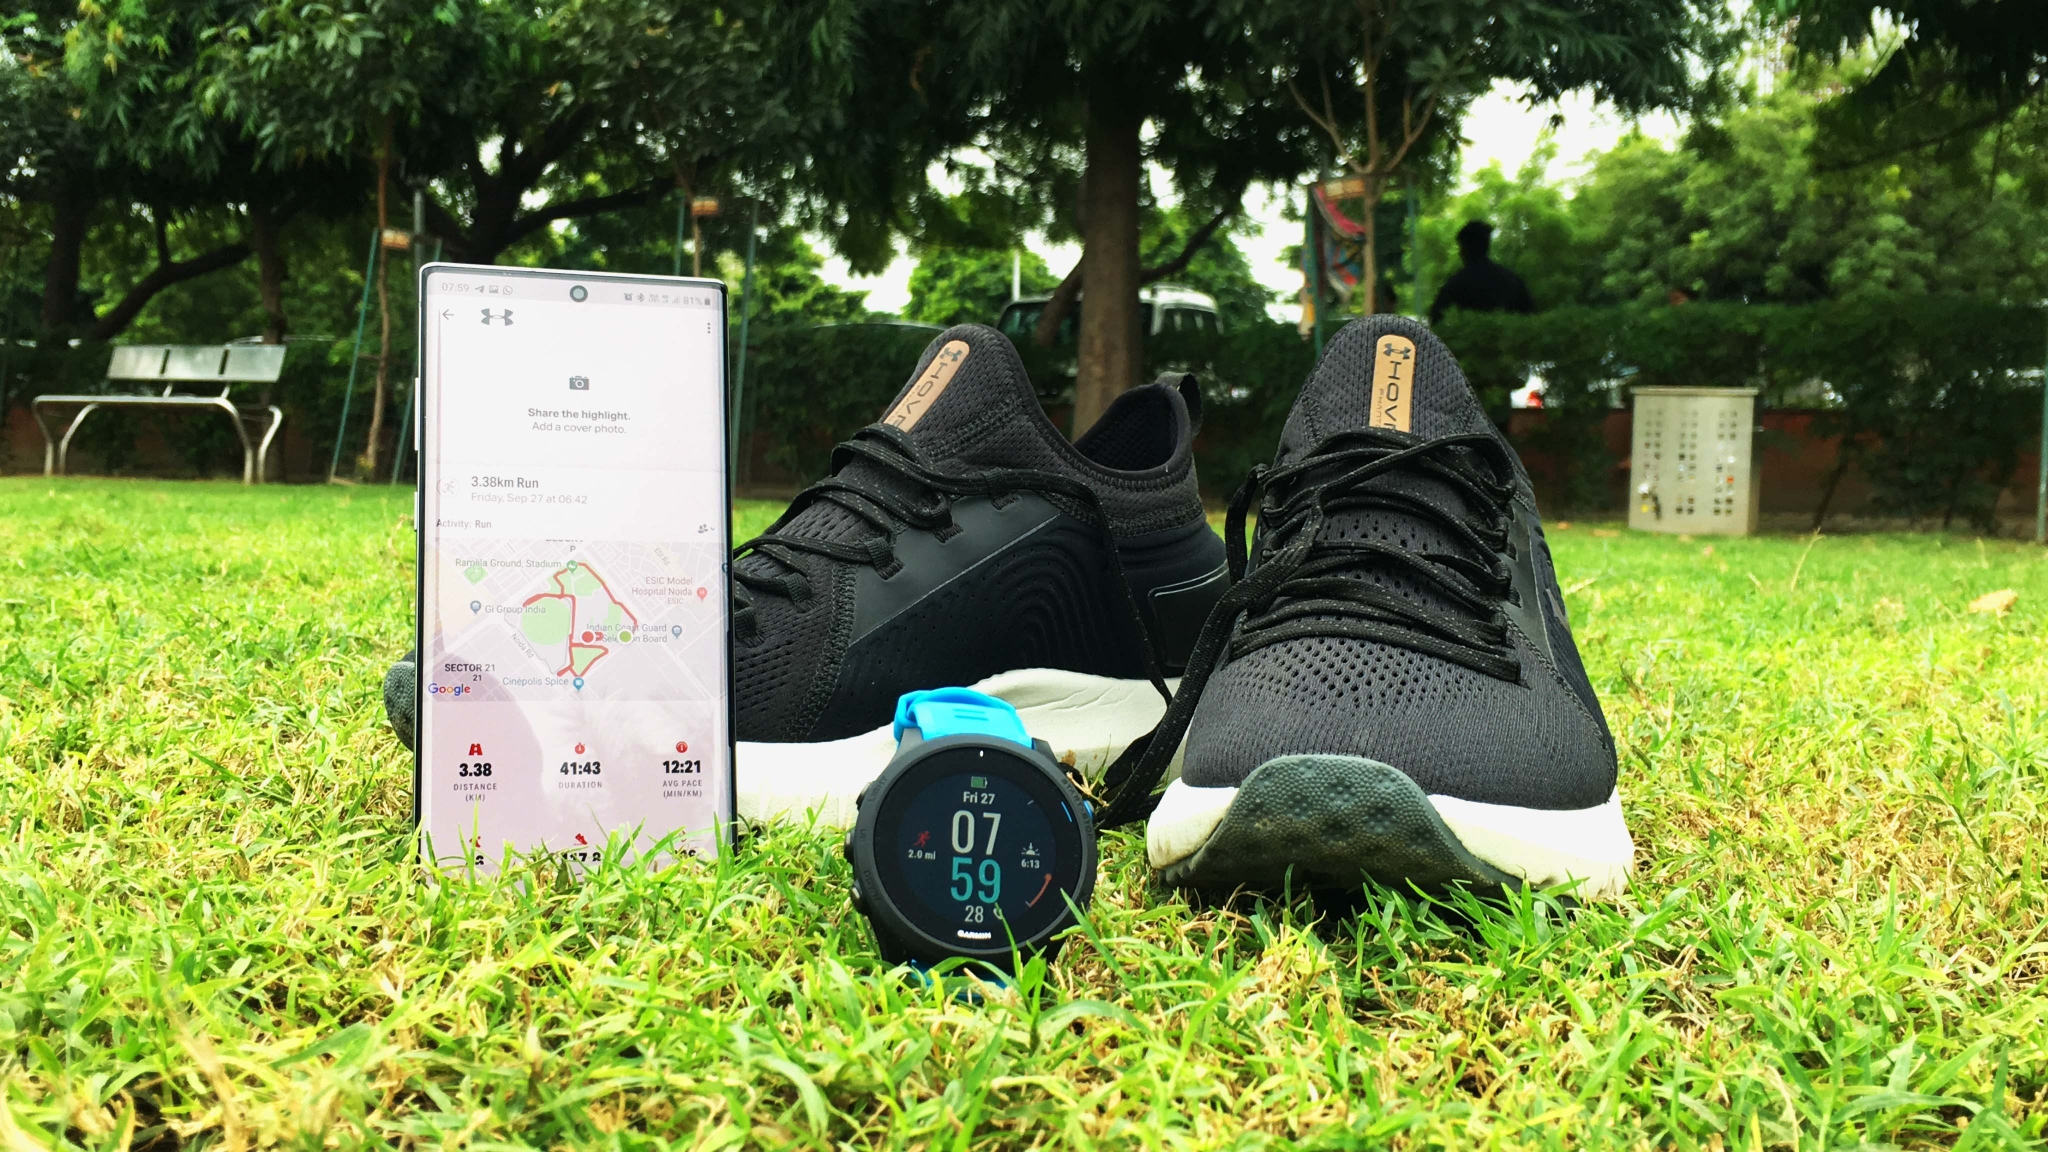 Smart Shoes vs Fitness App vs Smartwatch: The Best Option For You?